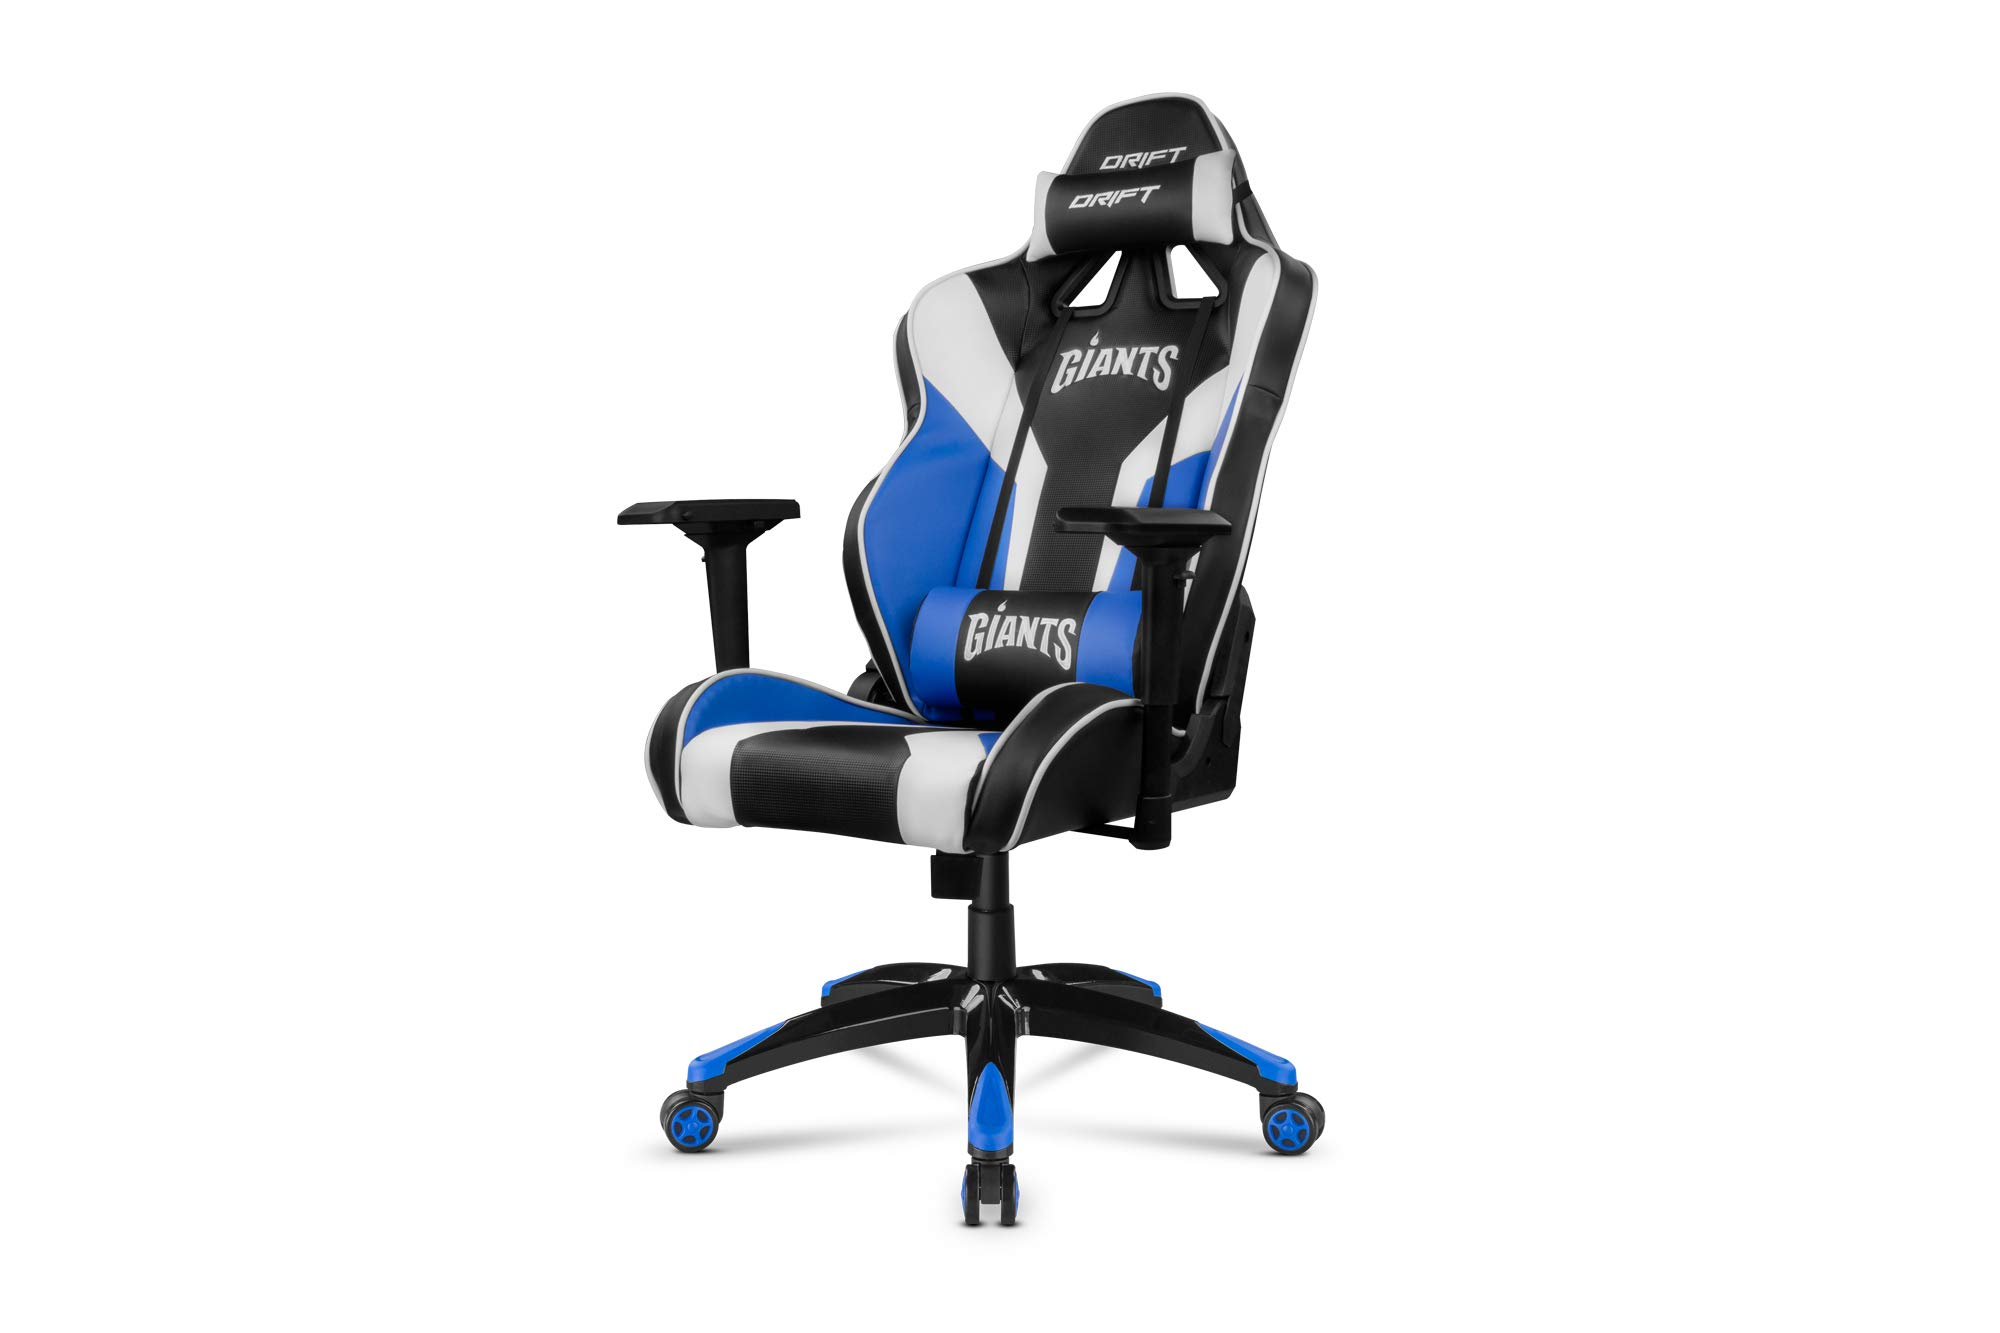 Drift DRGIANTS – Silla gaming, color negro, azul y blanco